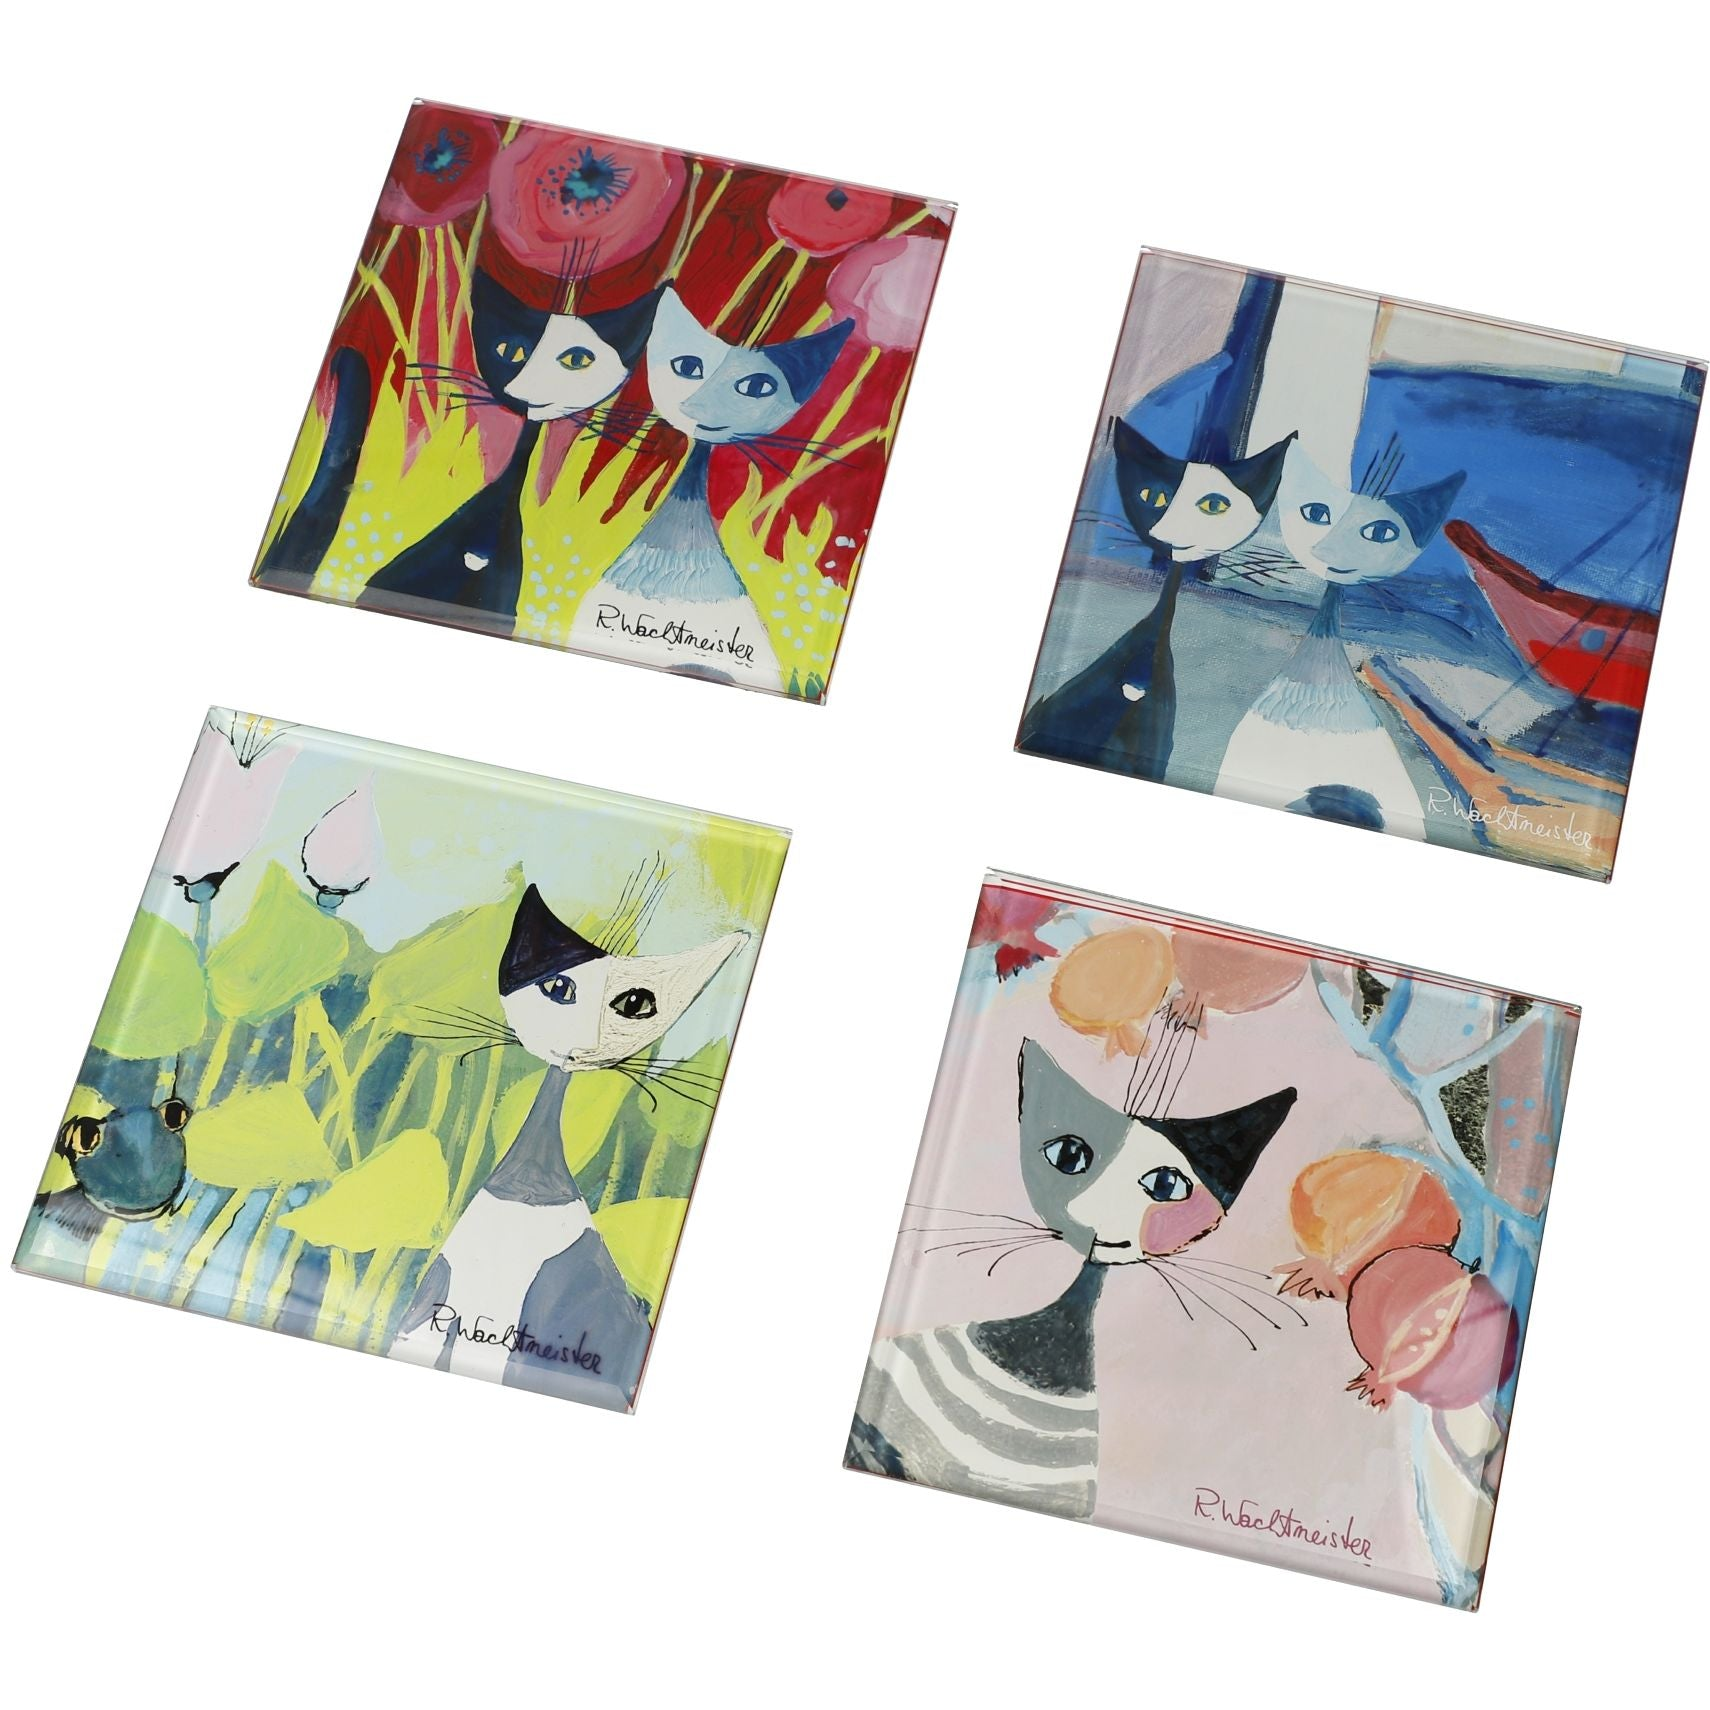 Rosina Wachtmeister Glass Coasters